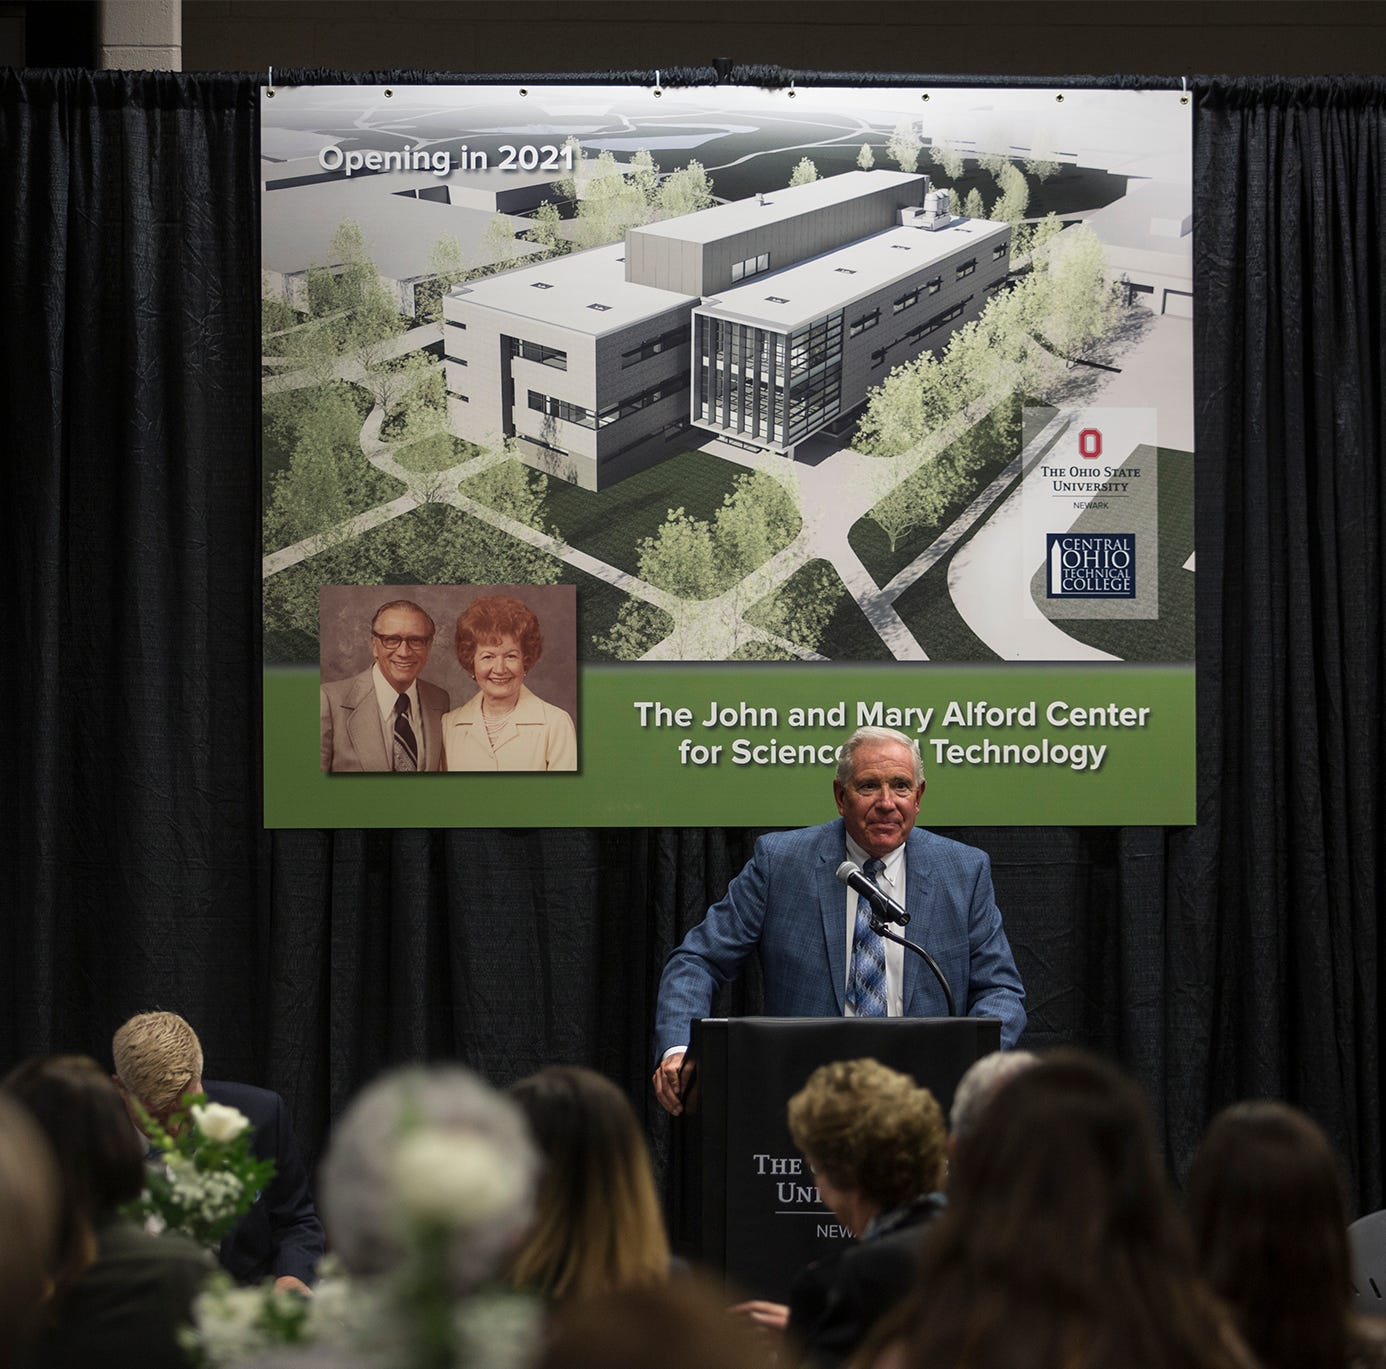 OSU-N, COTC to build science, technology center on campus